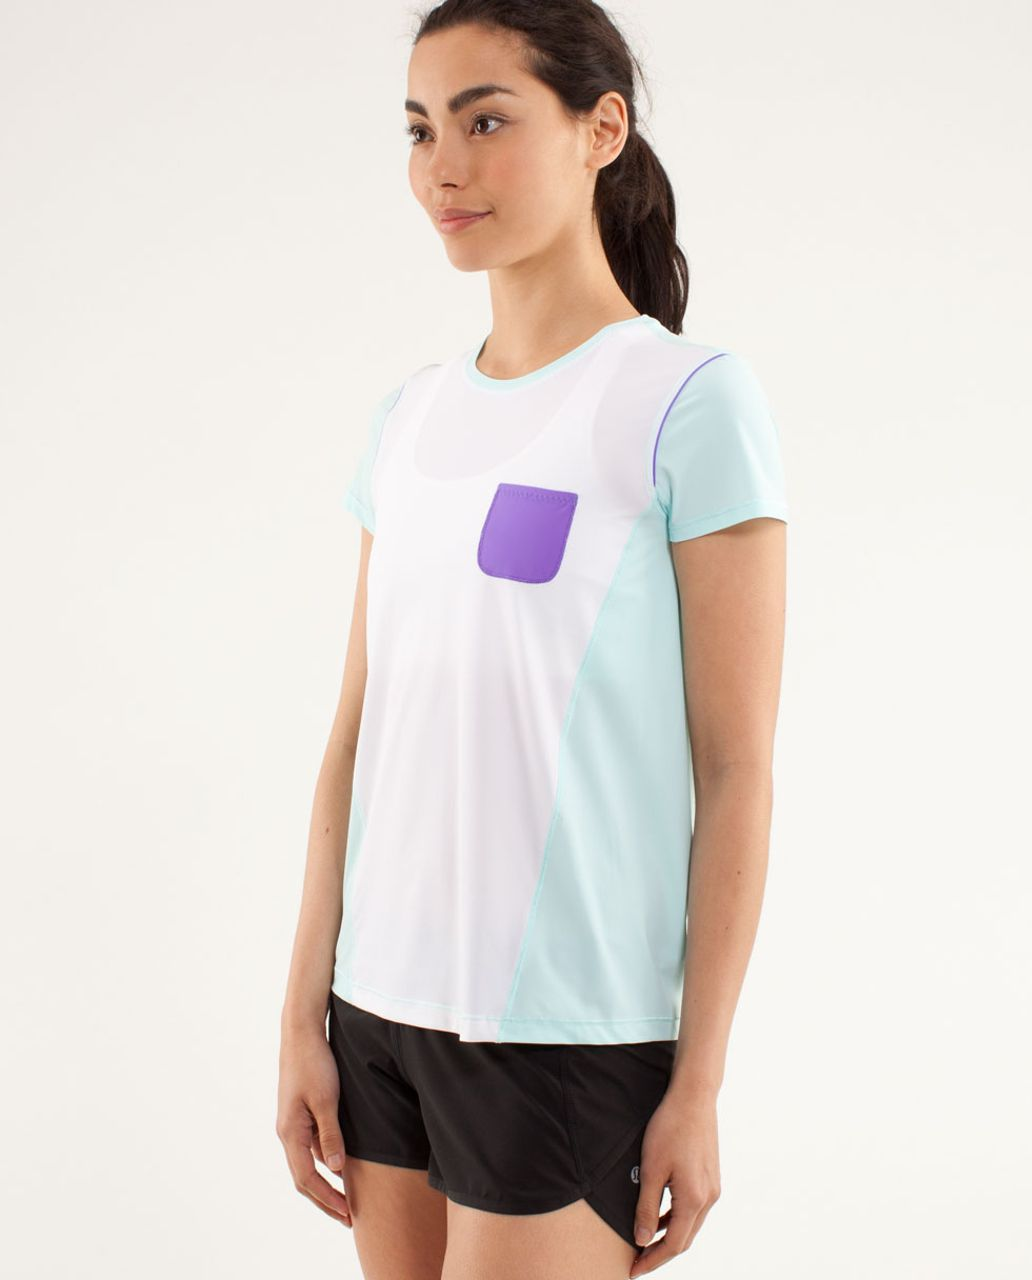 Lululemon Runbeam Short Sleeve - White / Aquamarine